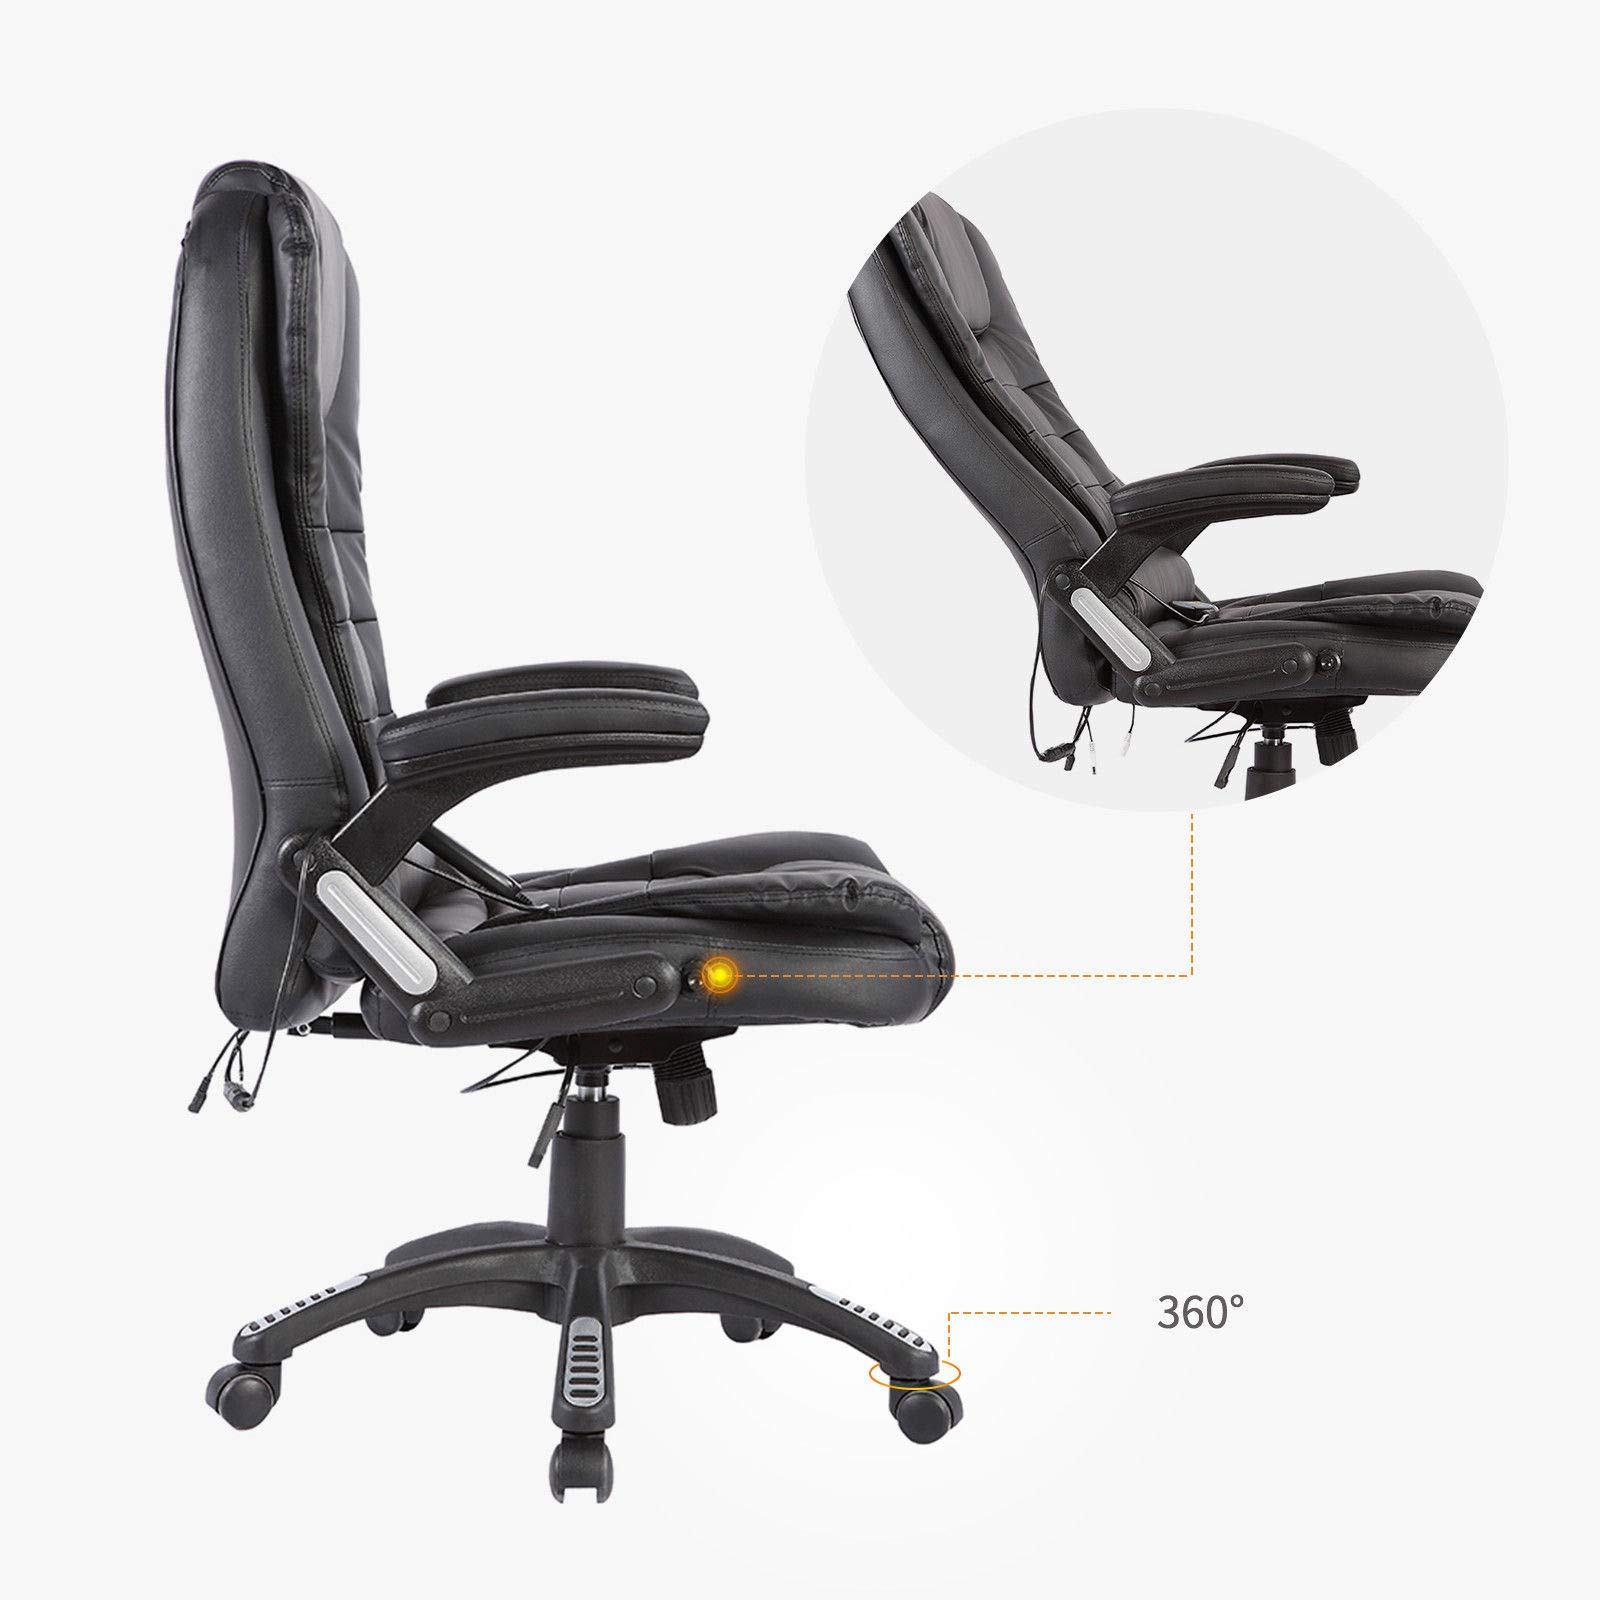 Black Massage Chair Office Swivel Executive Ergonomic Heated Vibrating Leather Chair, Remote Control 6-Point Massage, Adjustable Seat Height & Position by Taltintoo20 (Image #8)